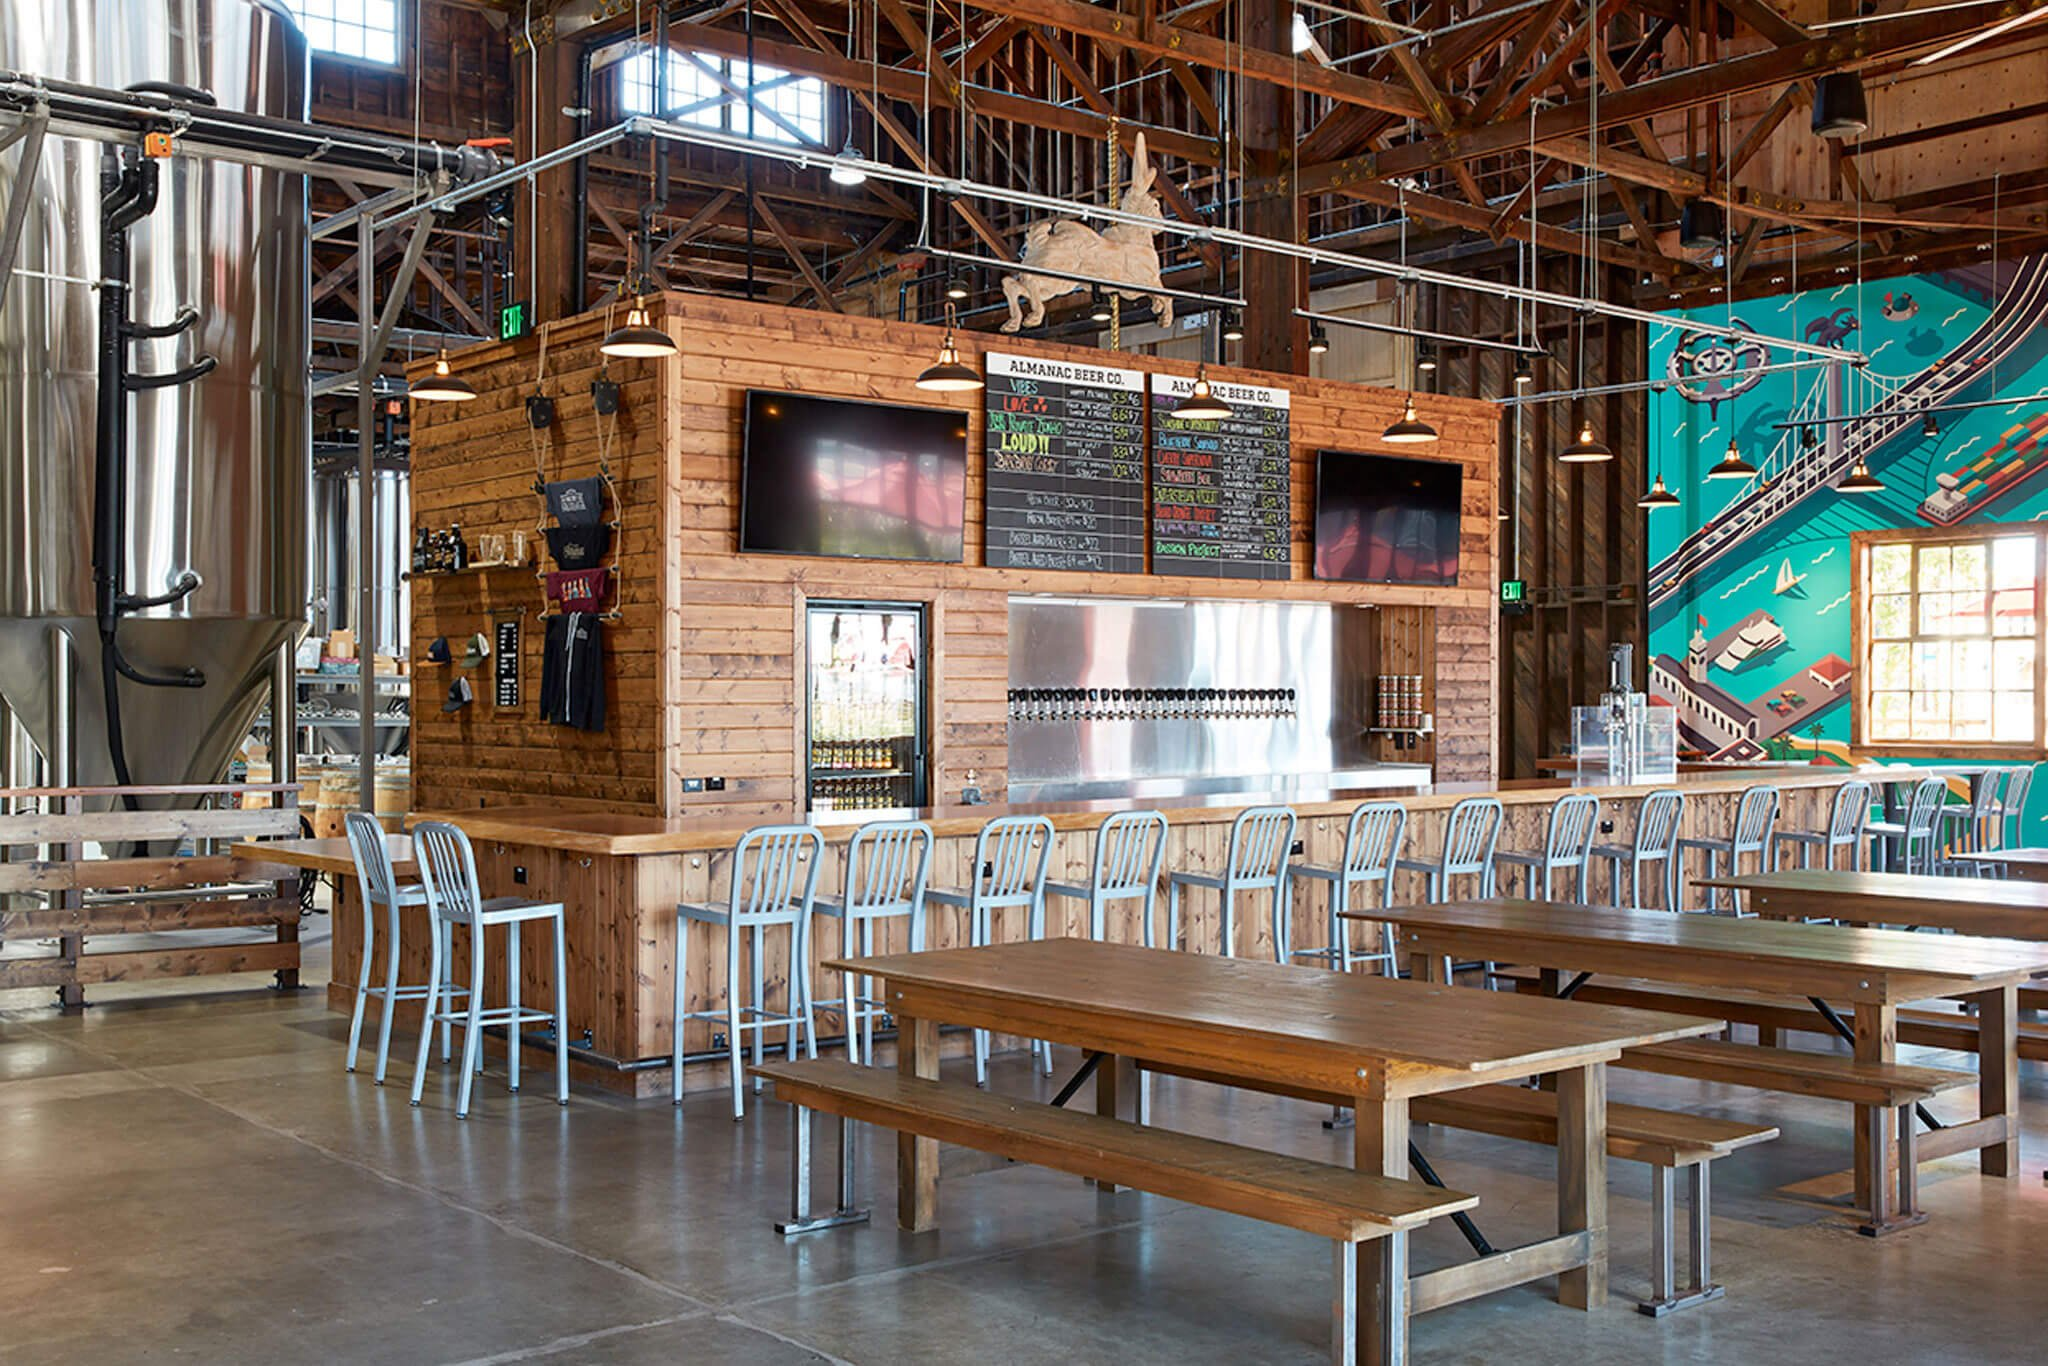 Inside the taproom at Almanac Beer Co. in Alameda, California